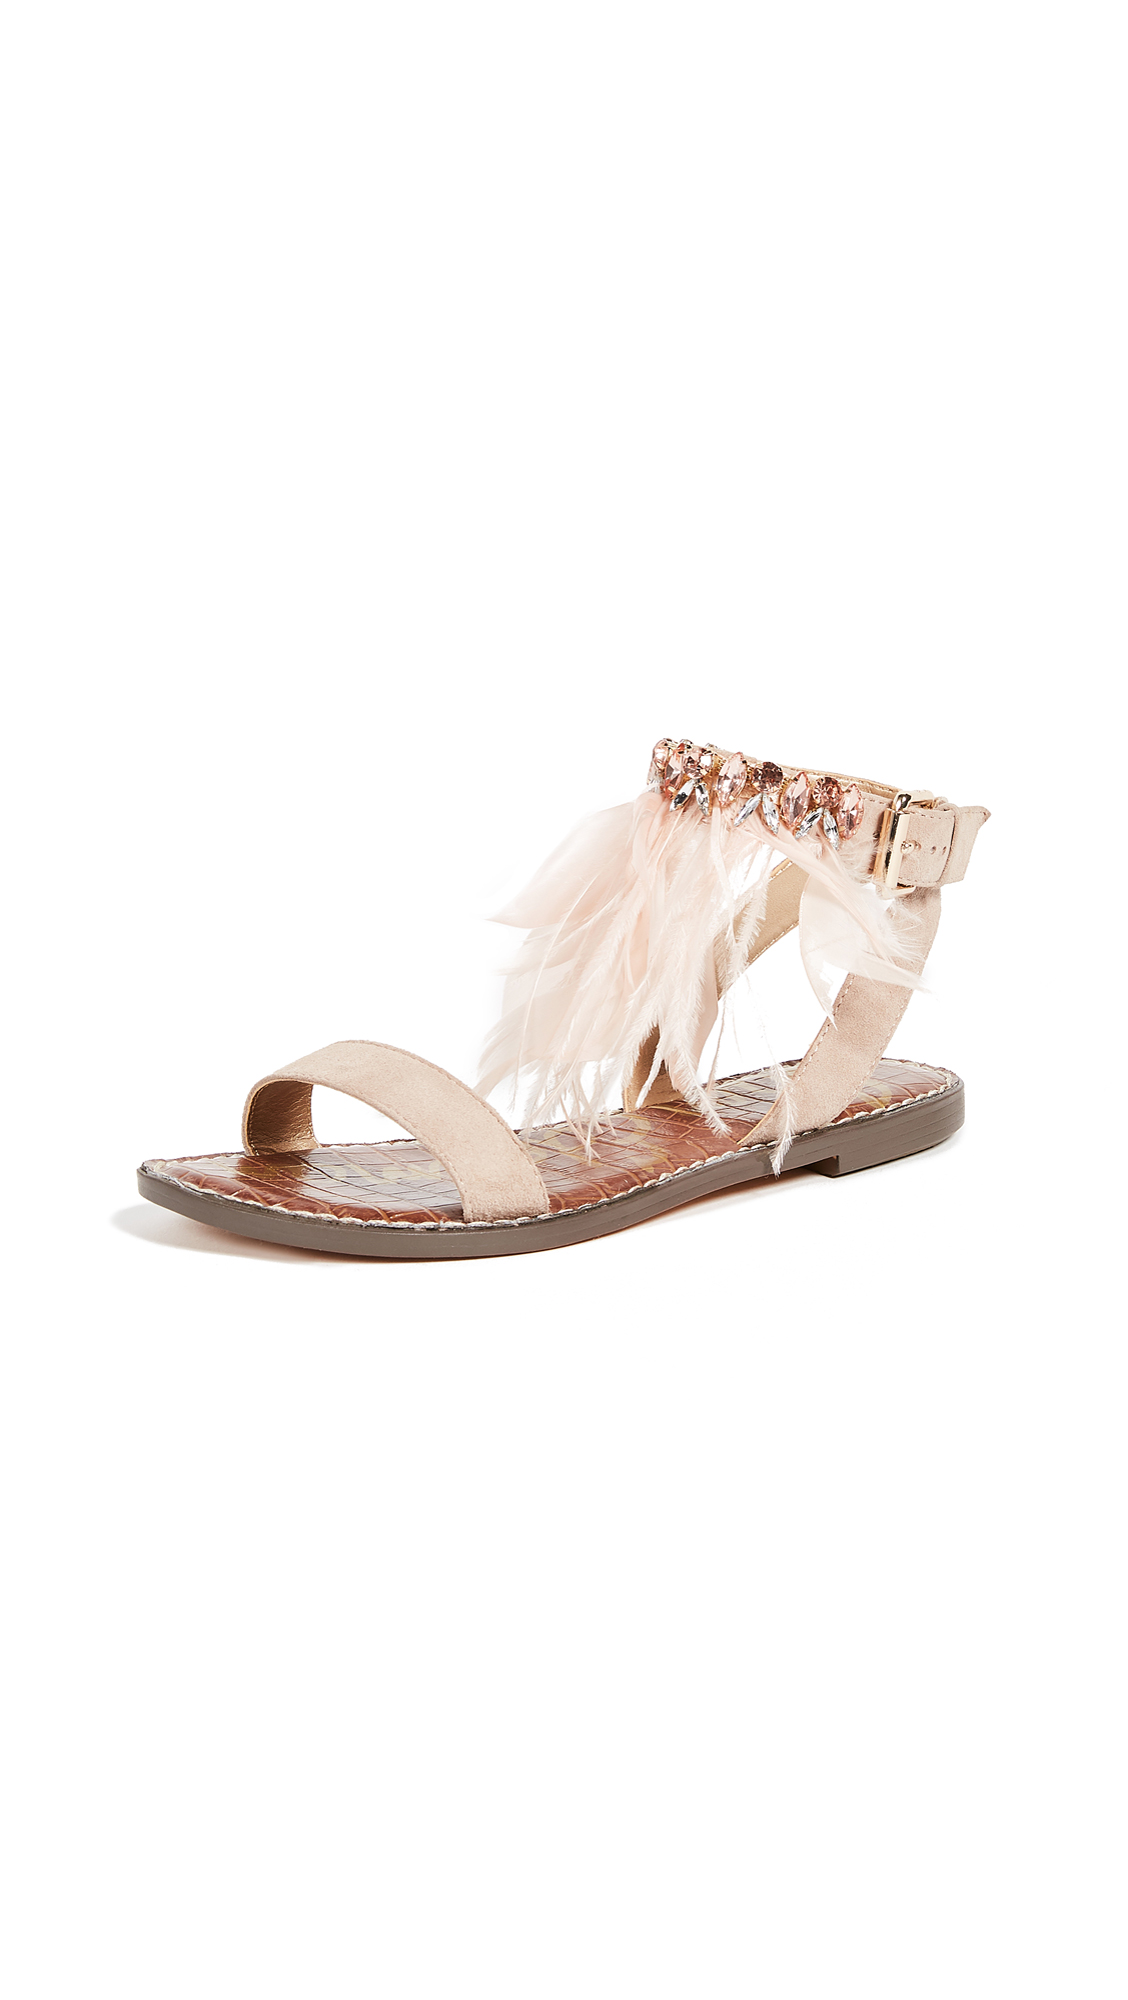 Sam Edelman Genevia Sandals - Taupe Rose